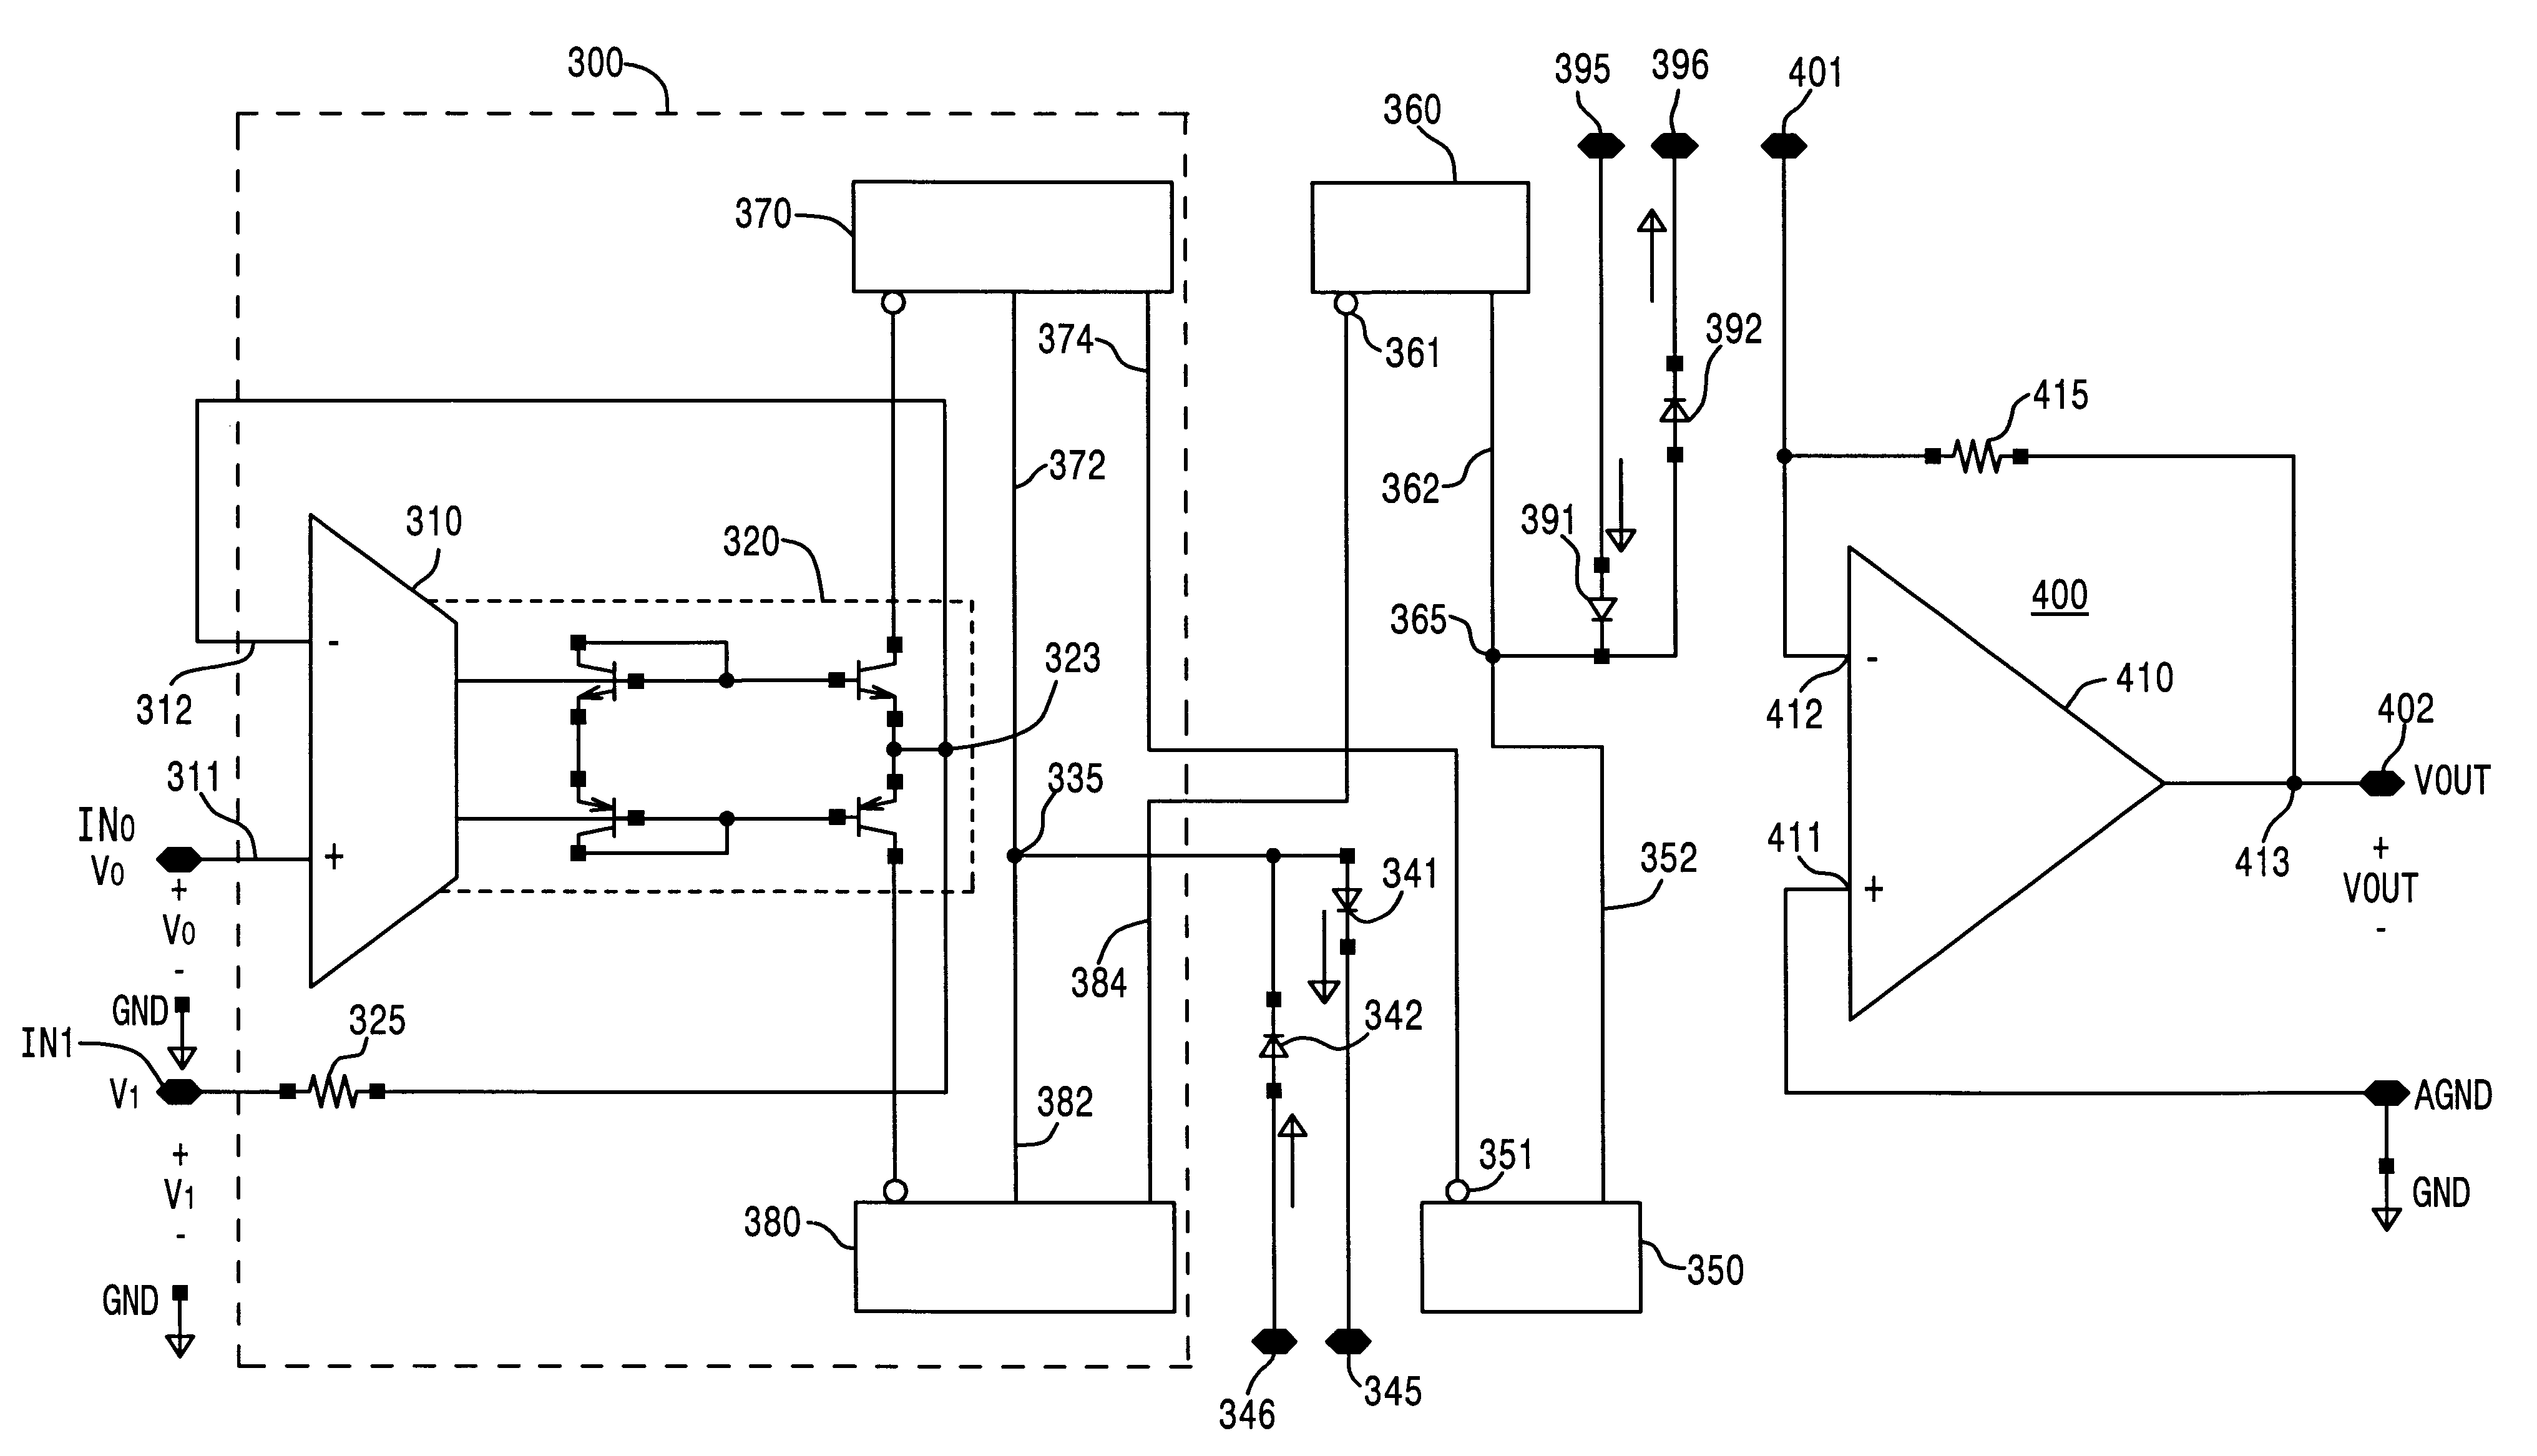 Patent Us 6452450 B1 Full Wave Rectification Circuit First Claim